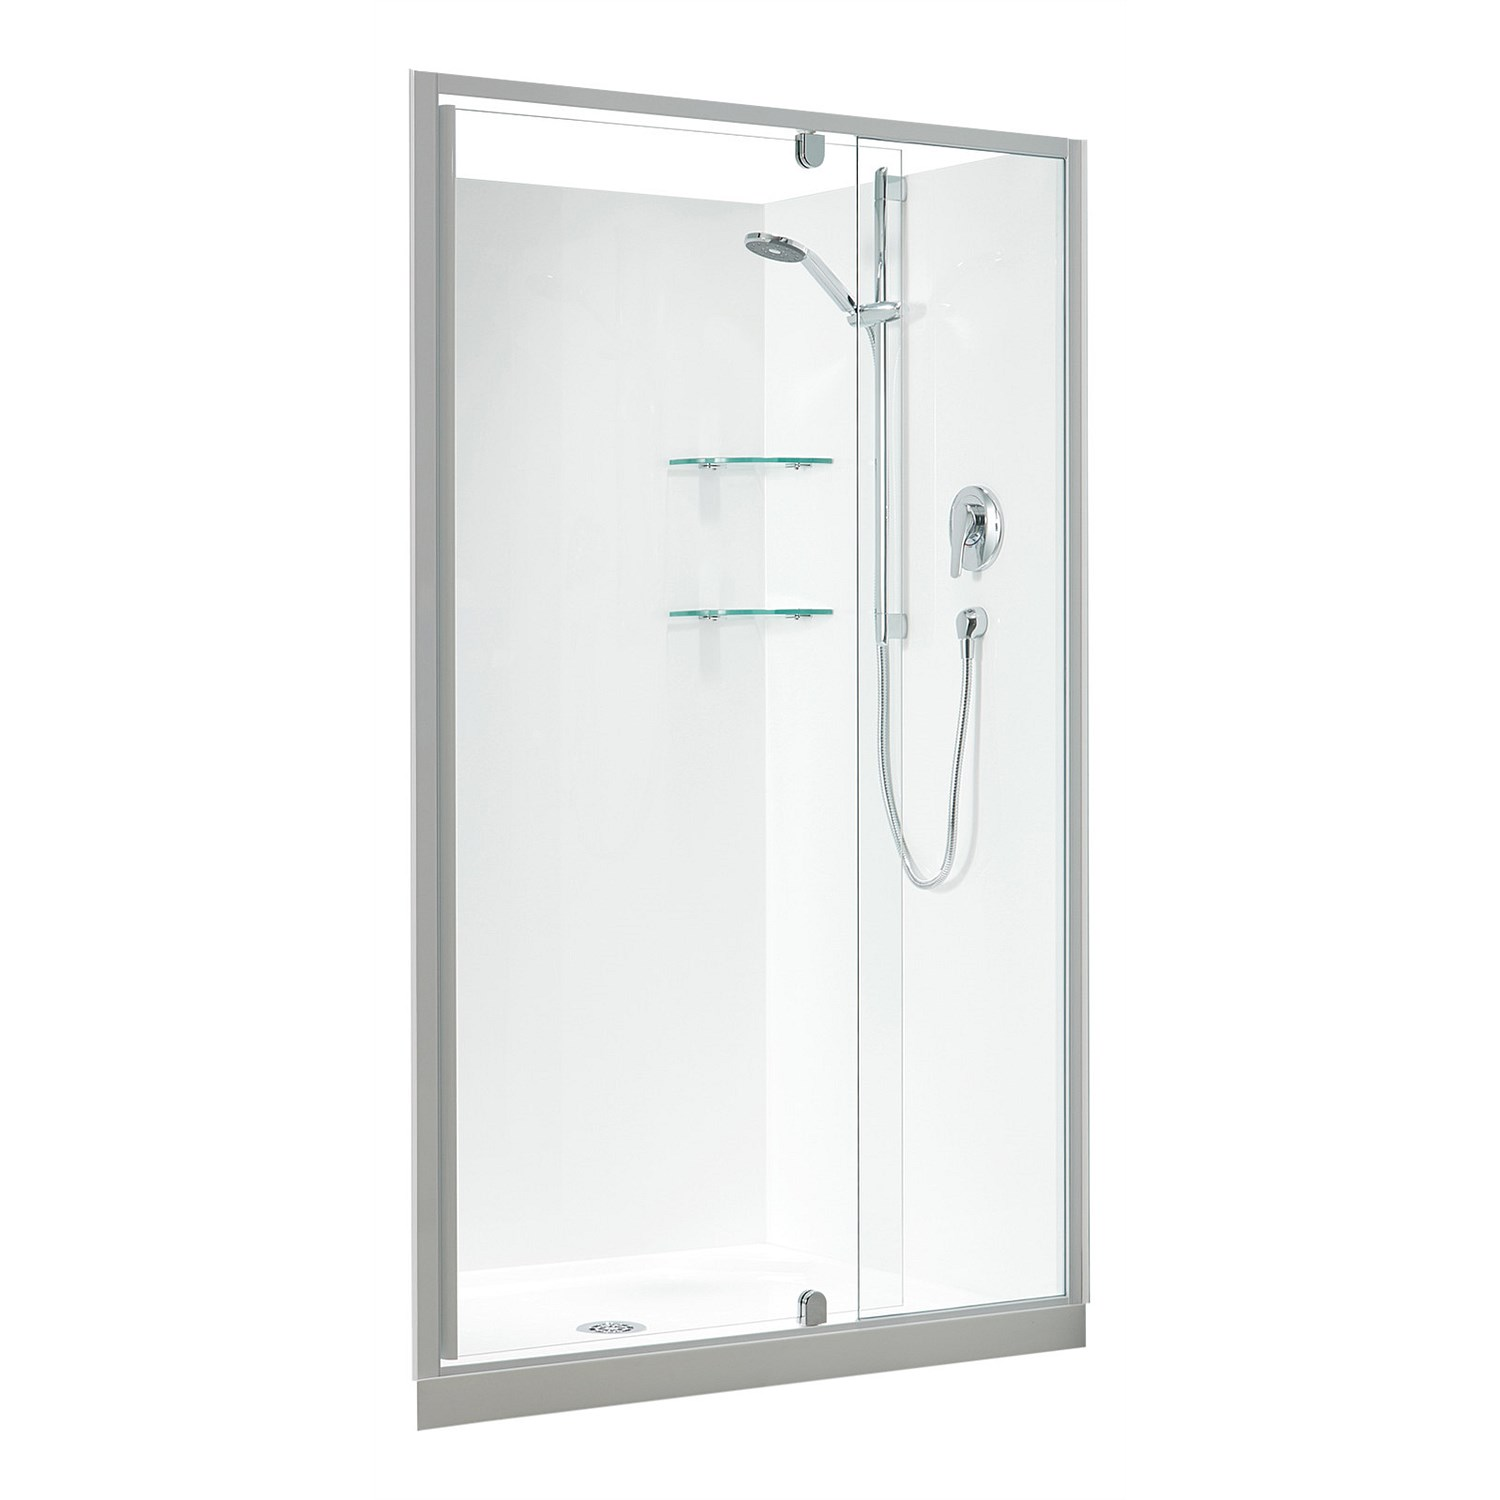 Showers Plumbing World Clearlite Sierra 1200mm 3 Sided Rectangle